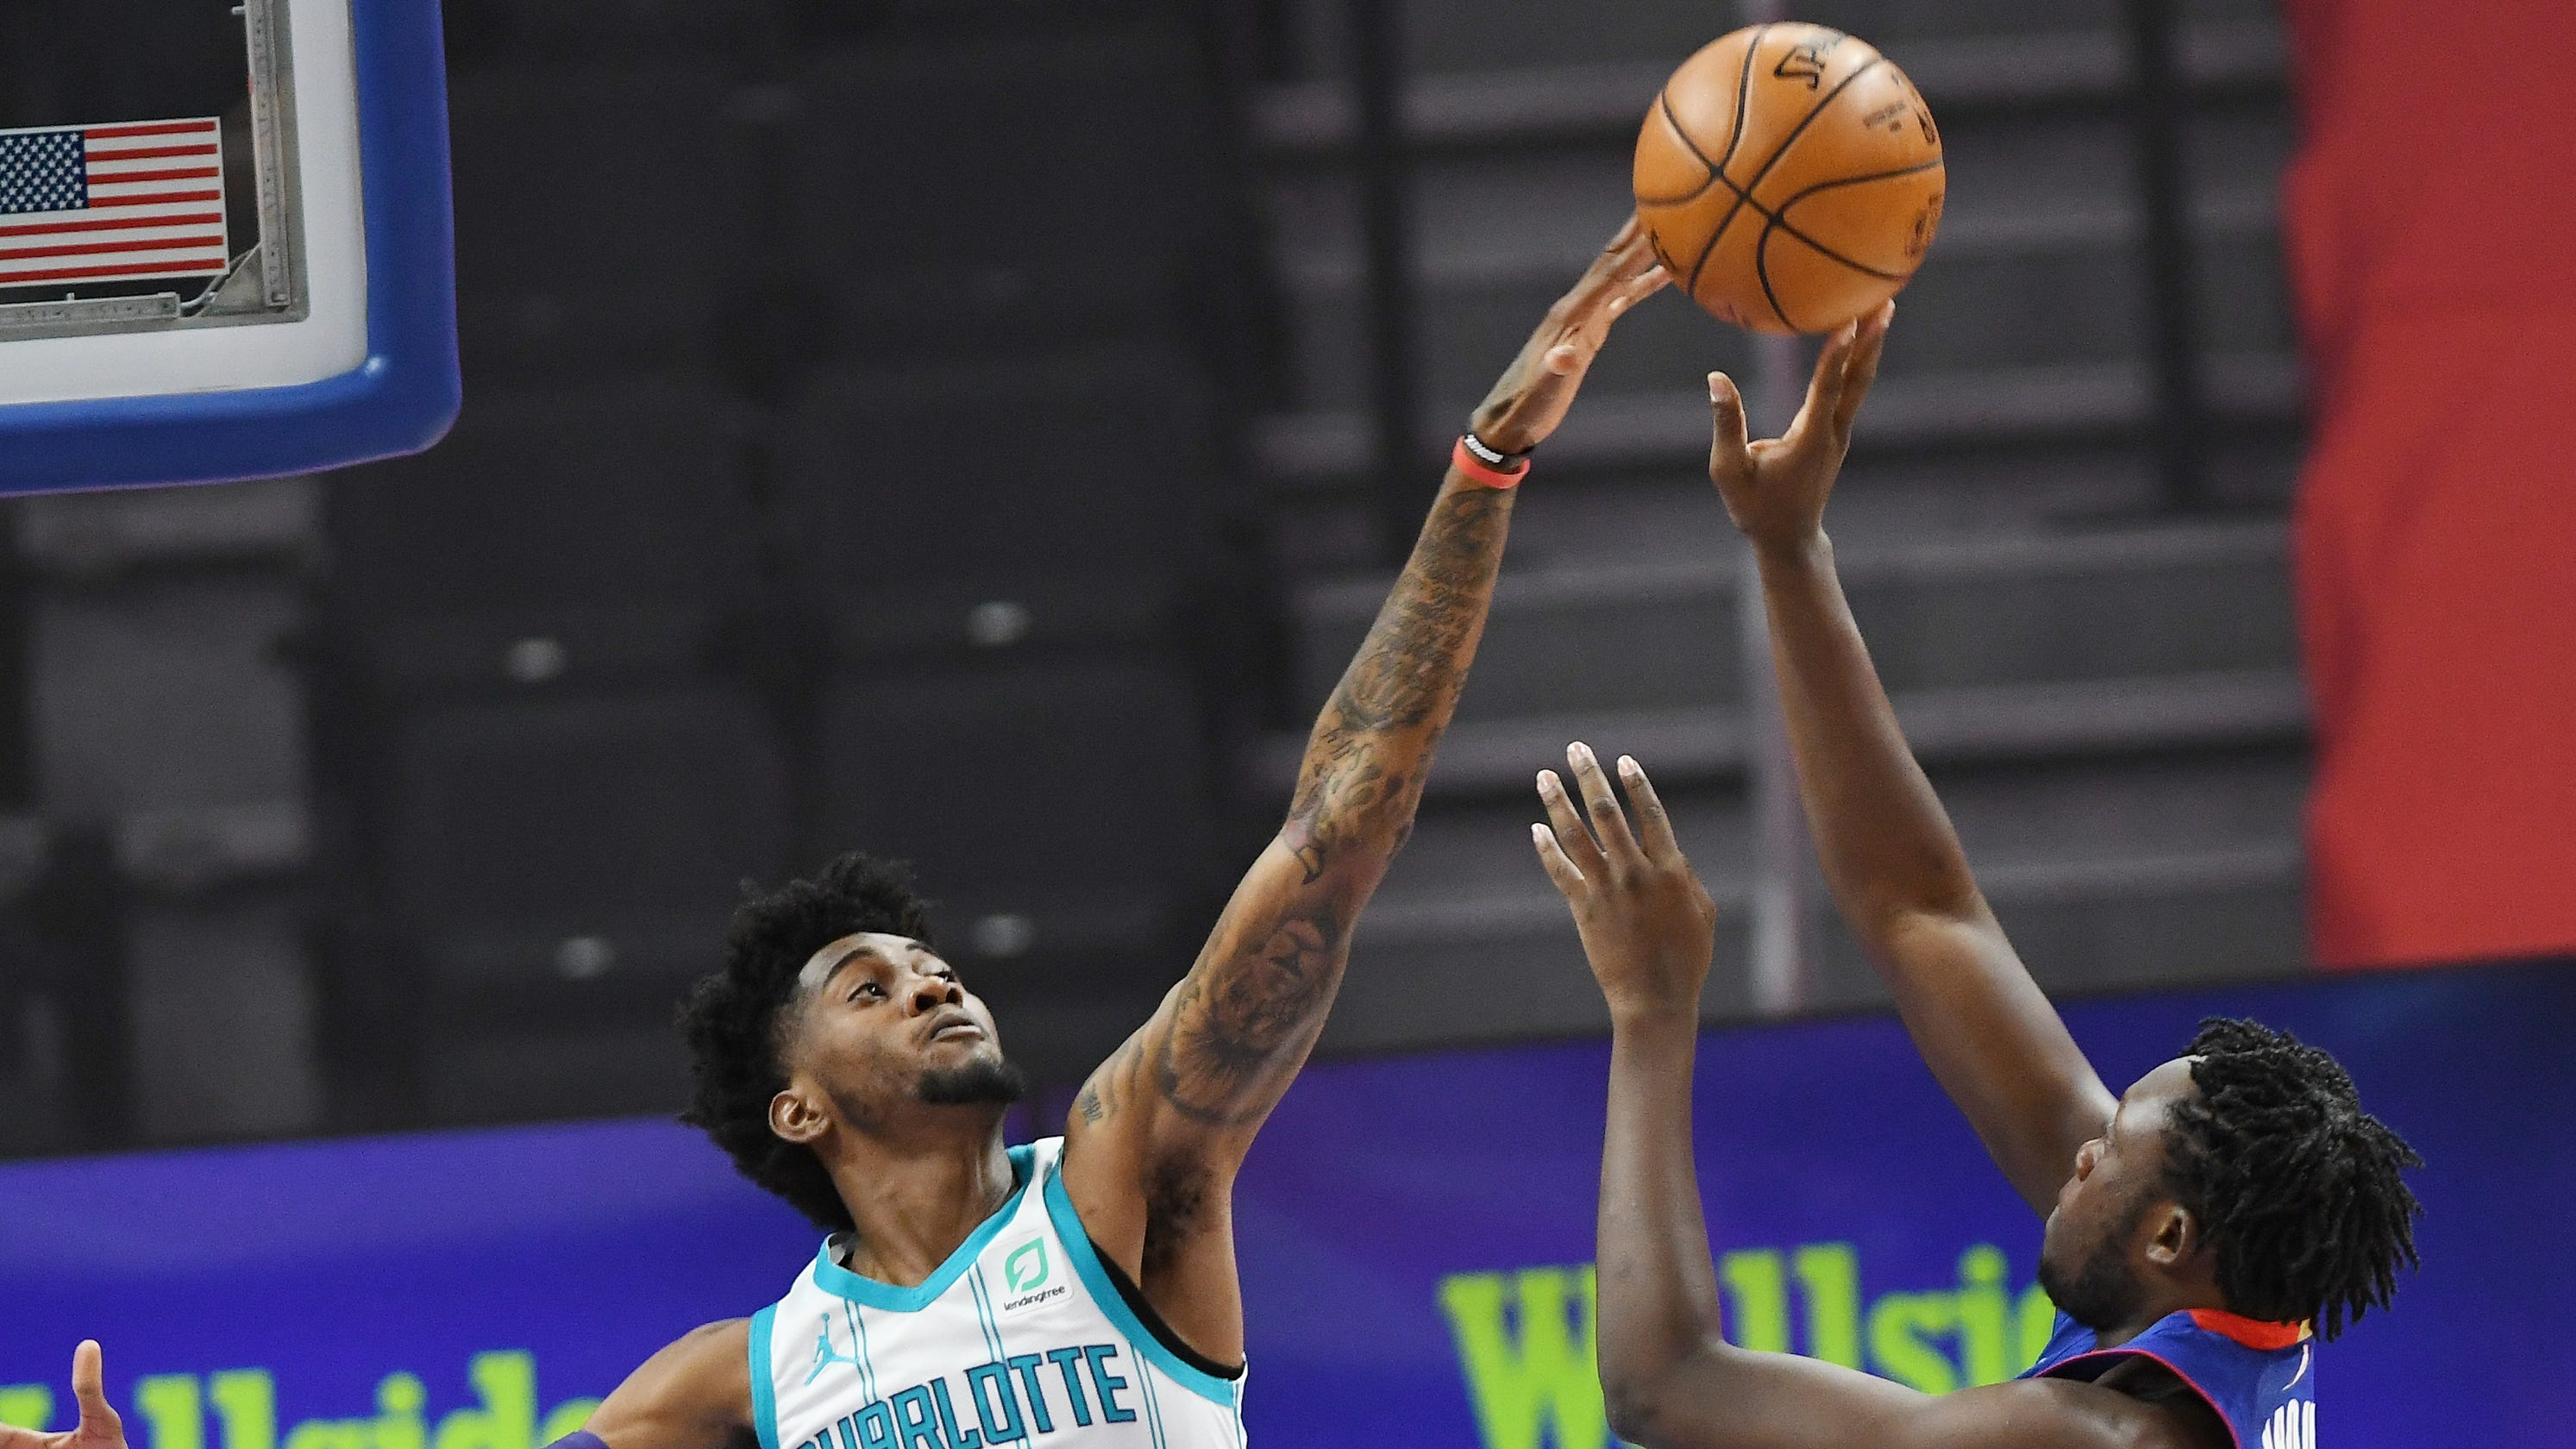 Diallo, Doumbouya combine for 55 points but Pistons lose to Hornets, 102-99